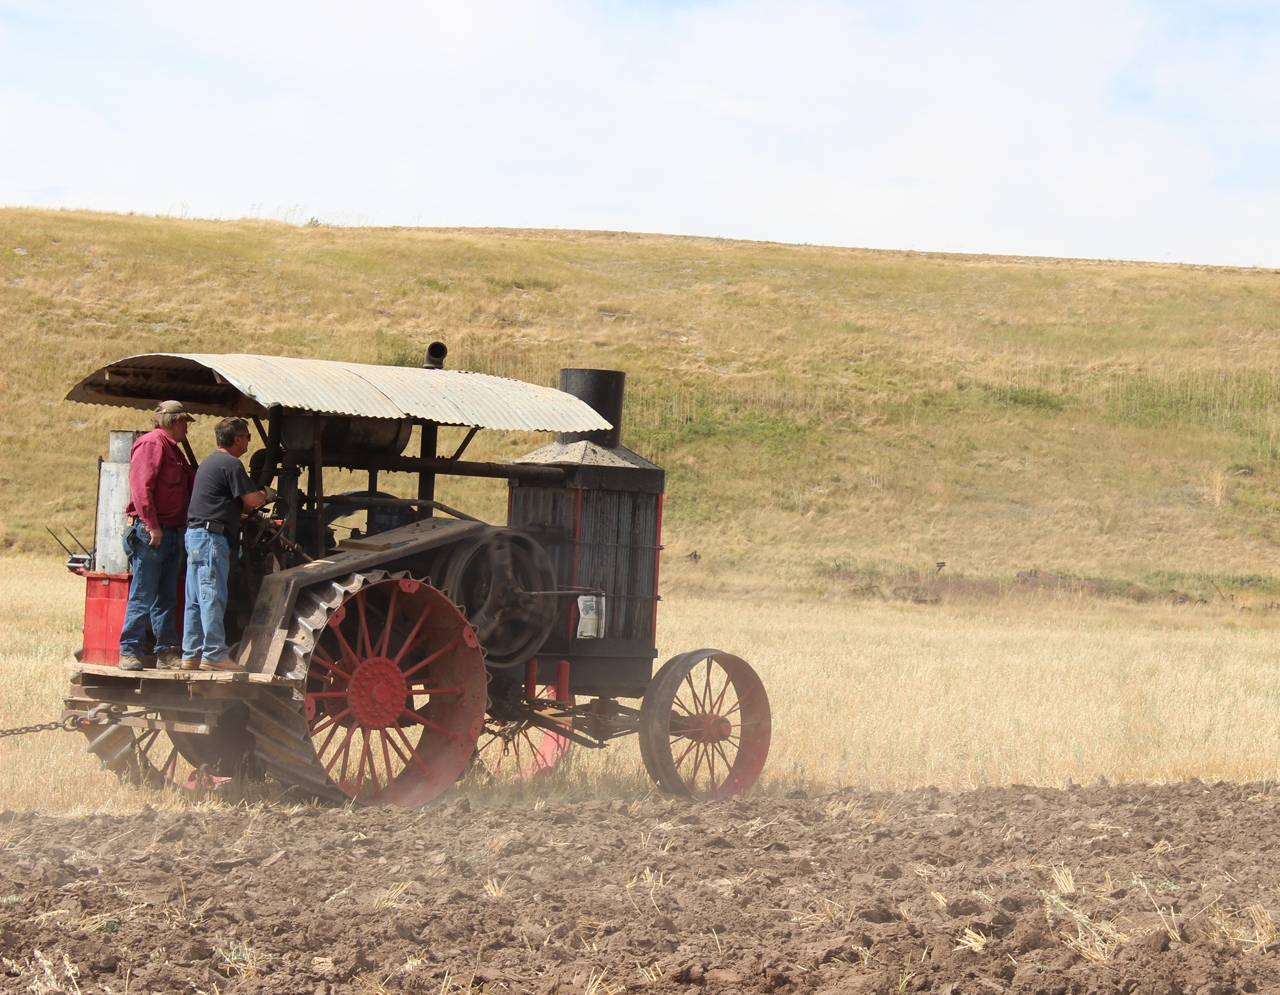 Seeing one of the Old Reliable tractors working as it was meant to is a rare treat today. Aside from the operators' clothing, this could be a scene from the 1910s.  Photo Luke Steinberger